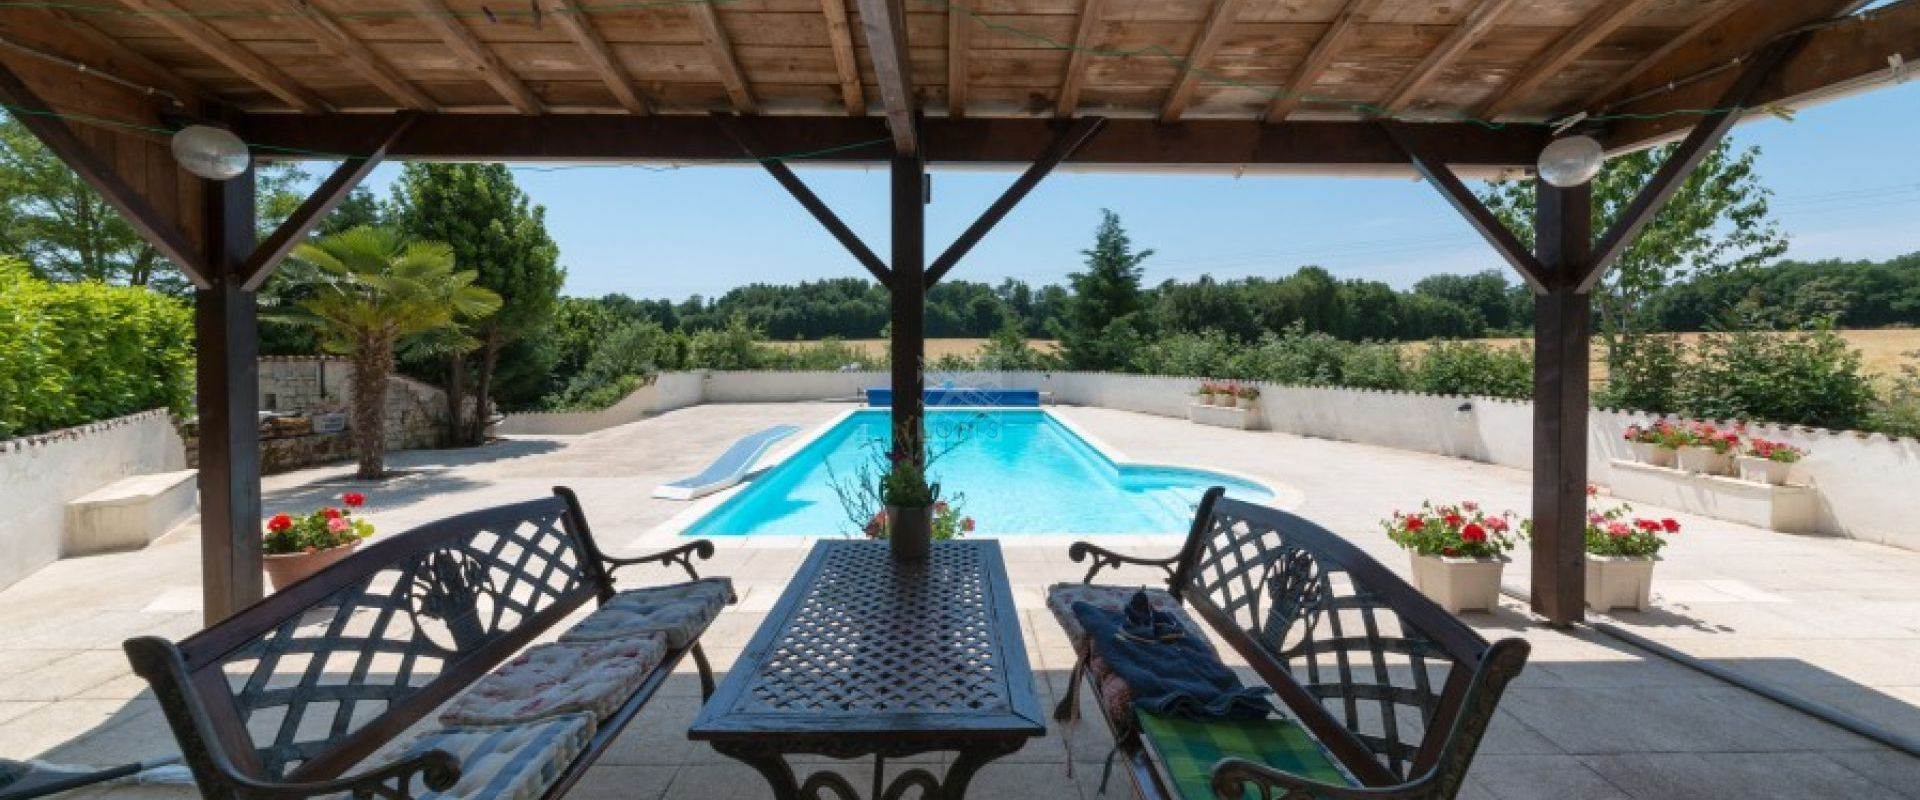 summer living room swimming pool property Royan